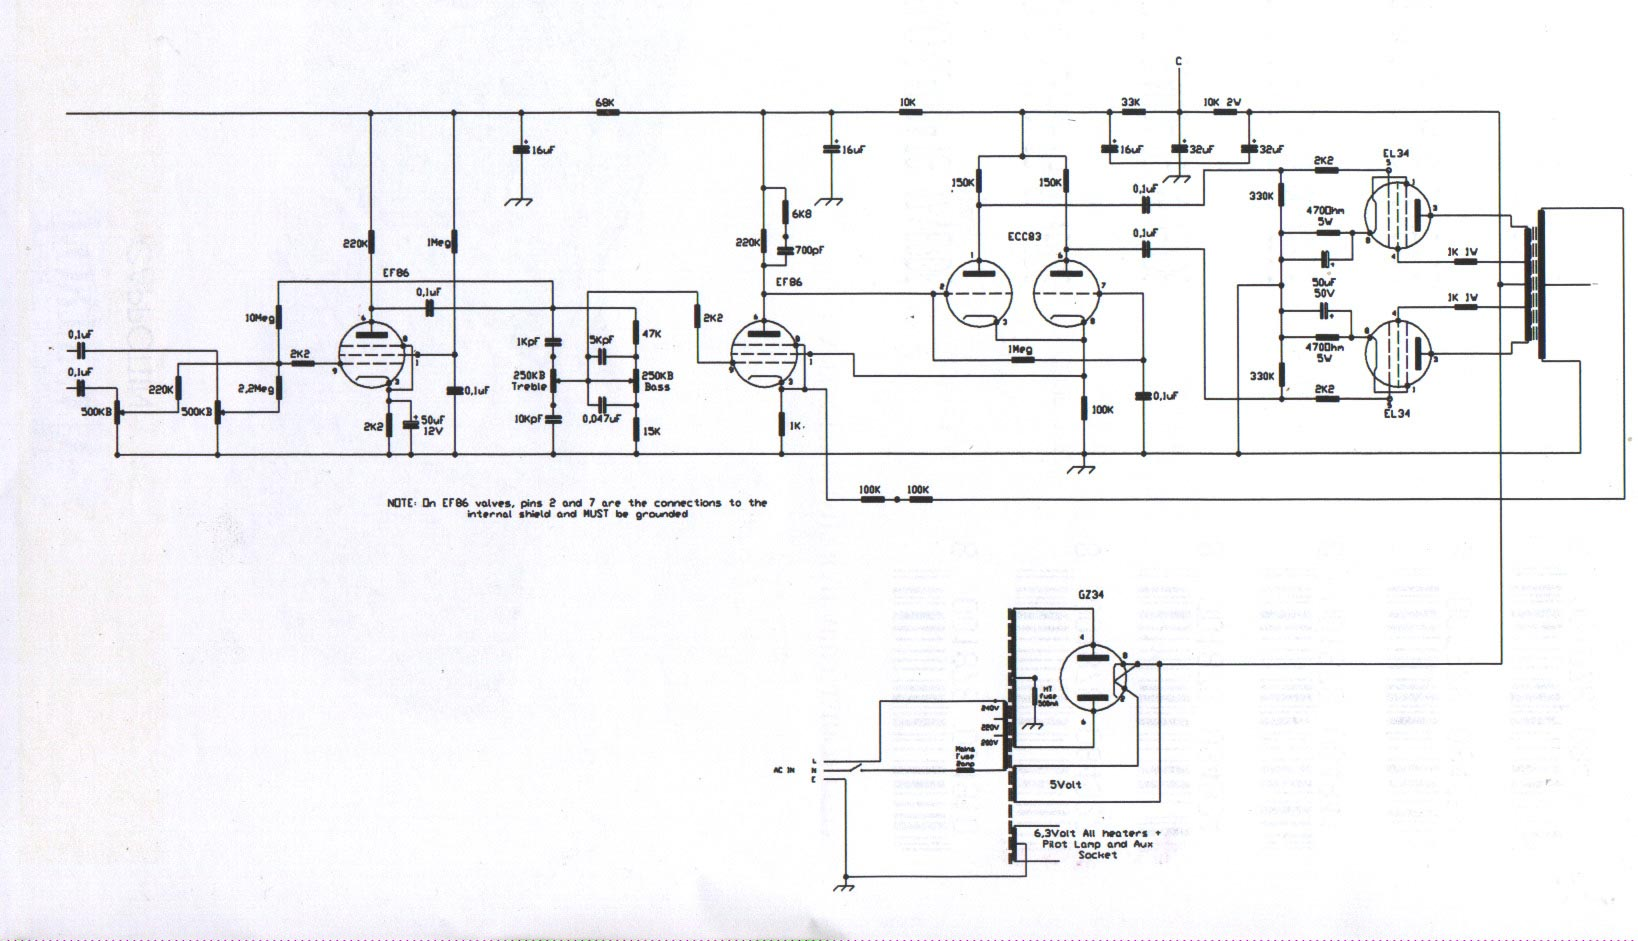 30 Model A Wire Diagram Automotive Wiring Broadcaster Linear Conchord L50 Schematic Rh Chambonino Com 12 Volt